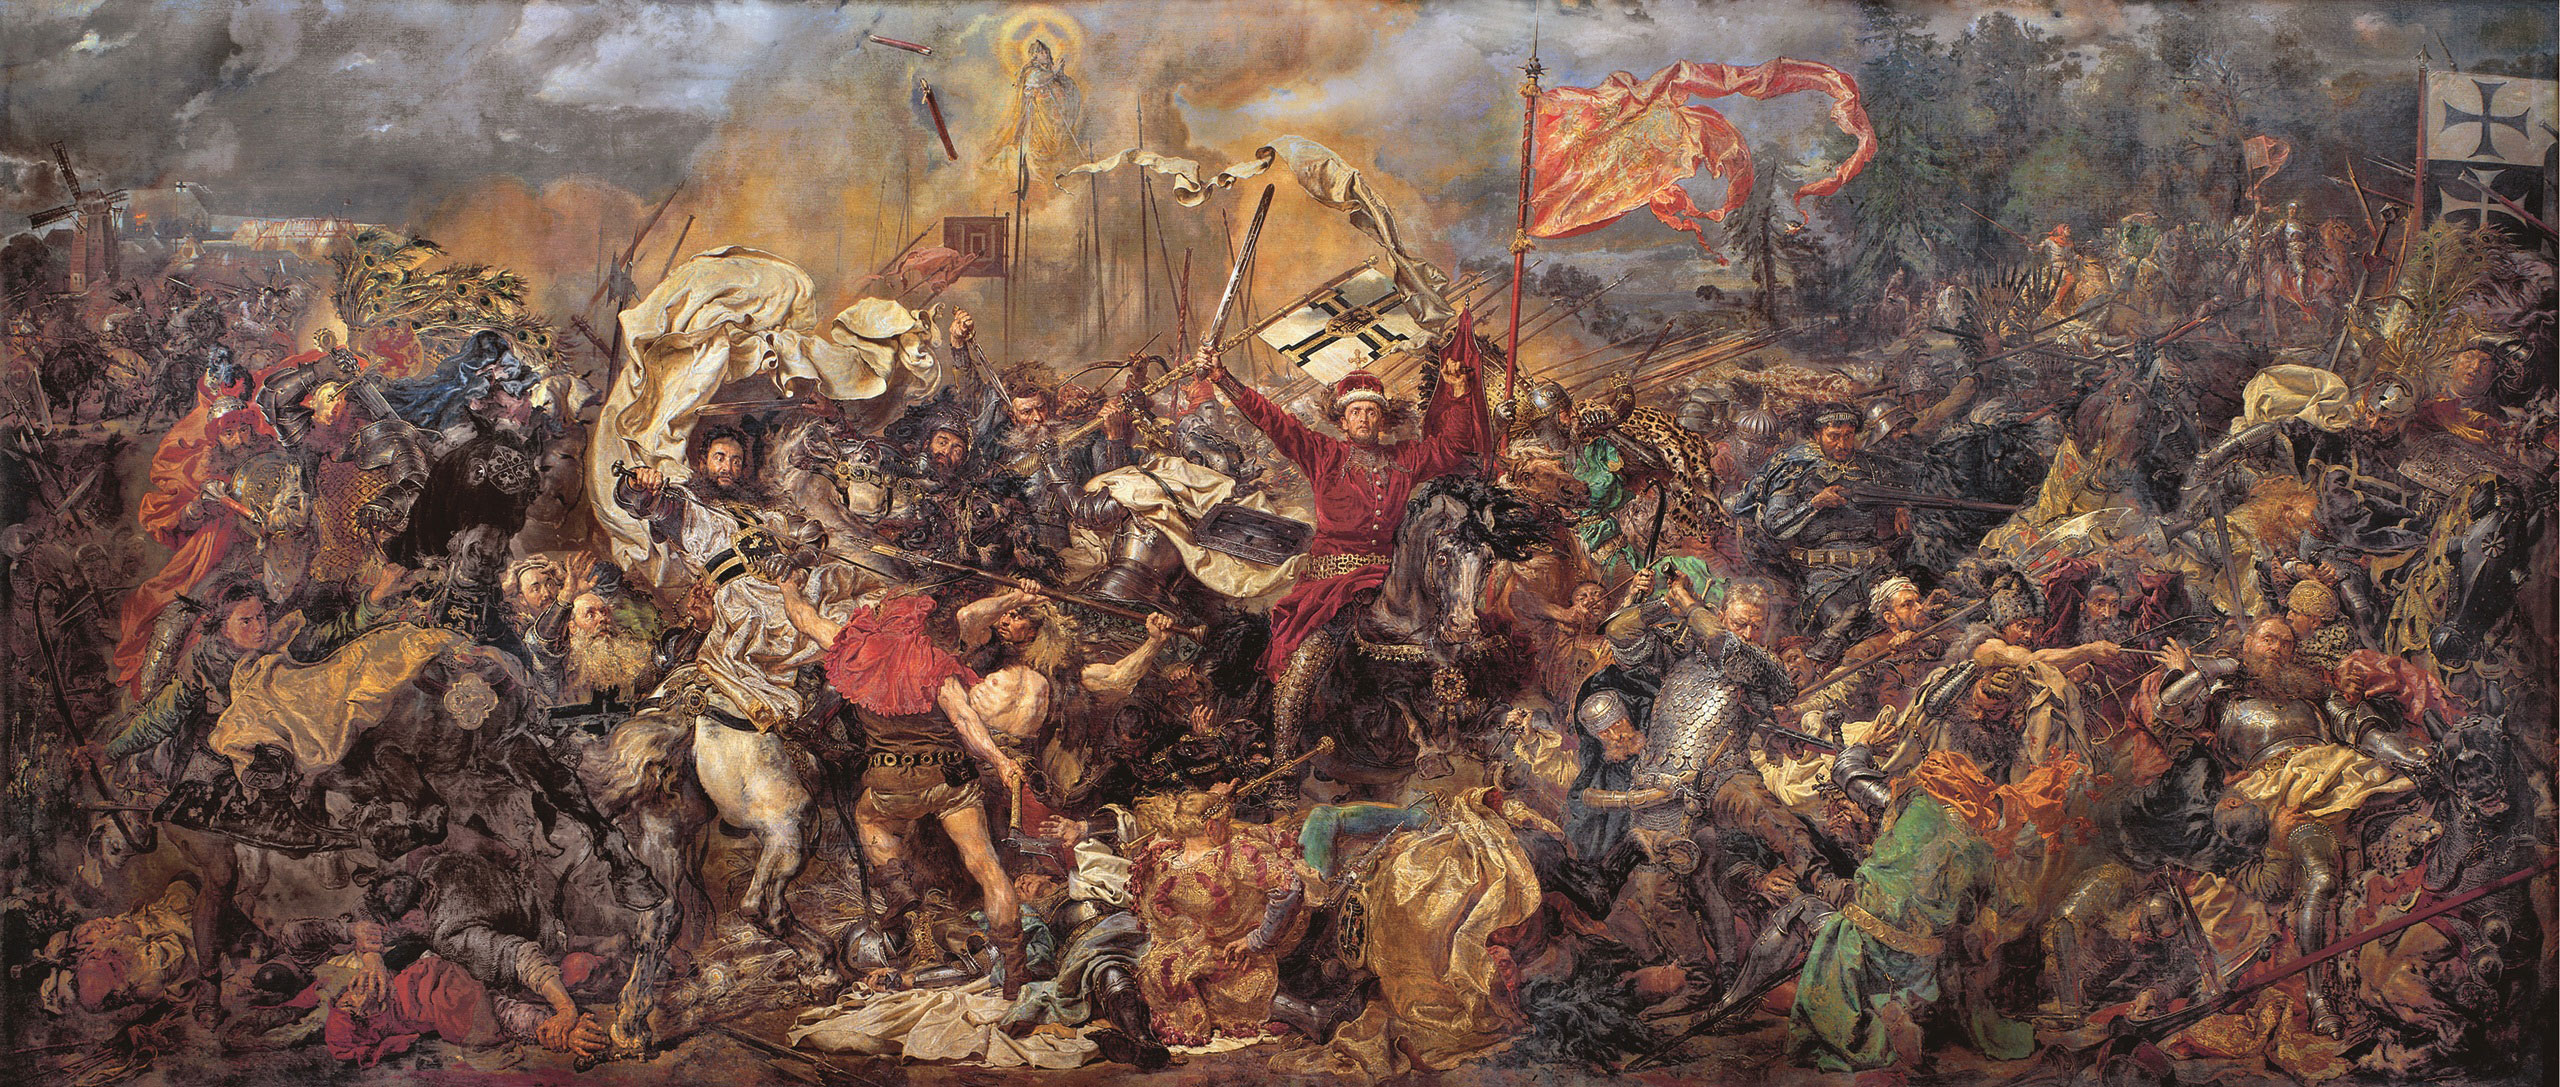 Battle of Grunwald - Jan Matejko